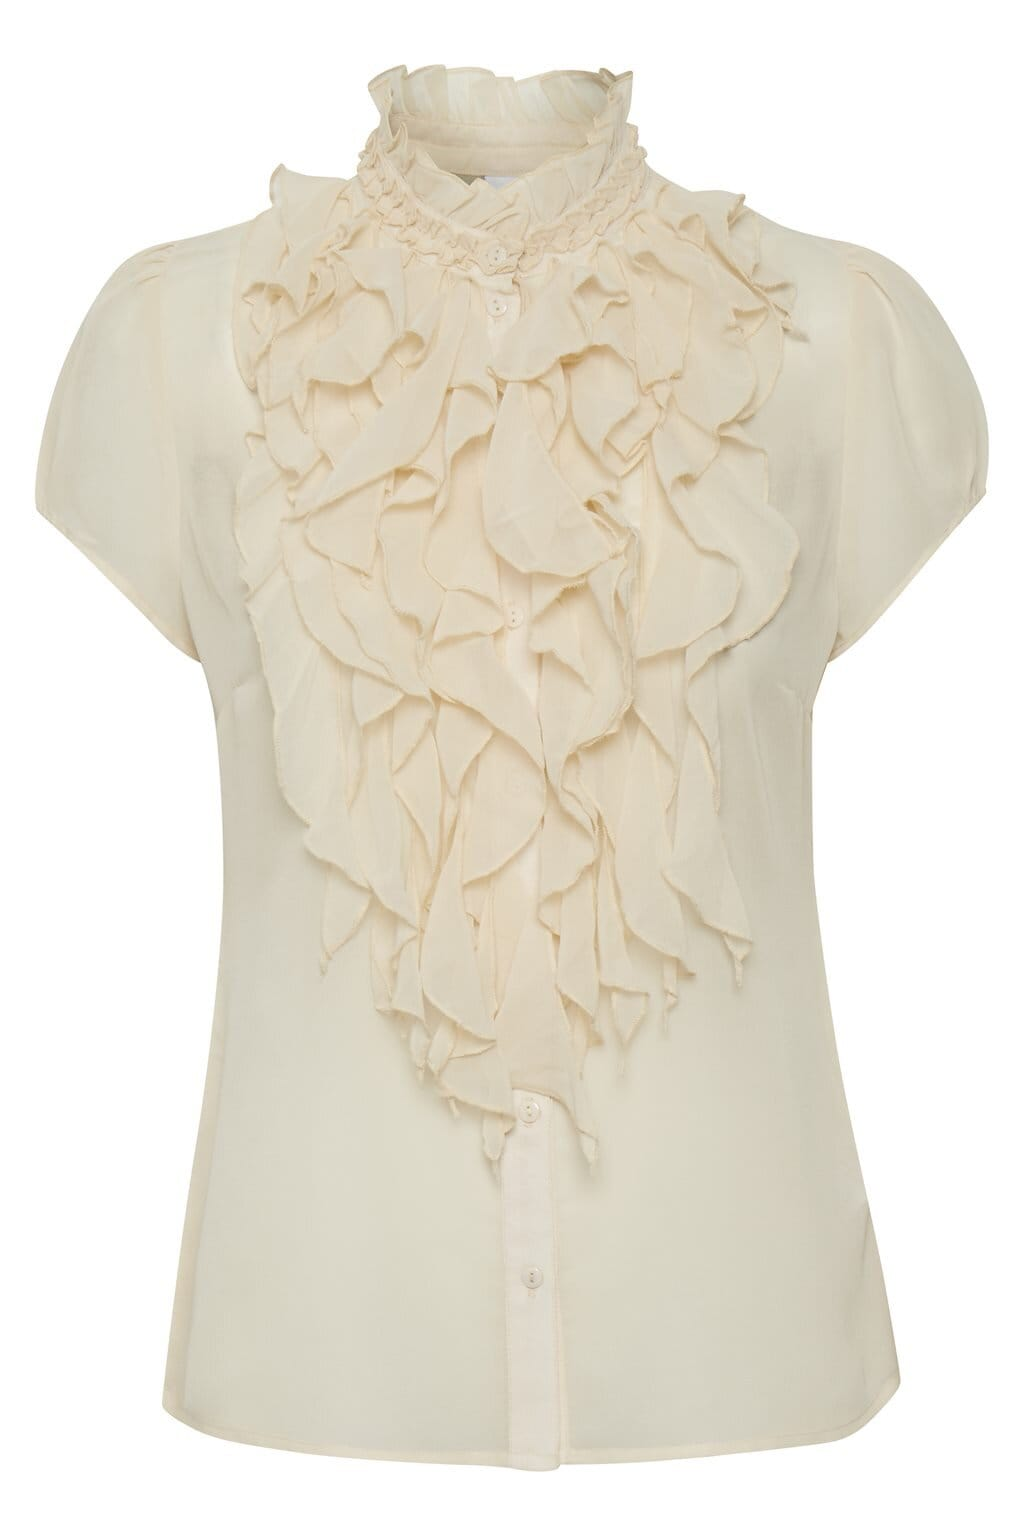 Lilly shirt Krås - Creme